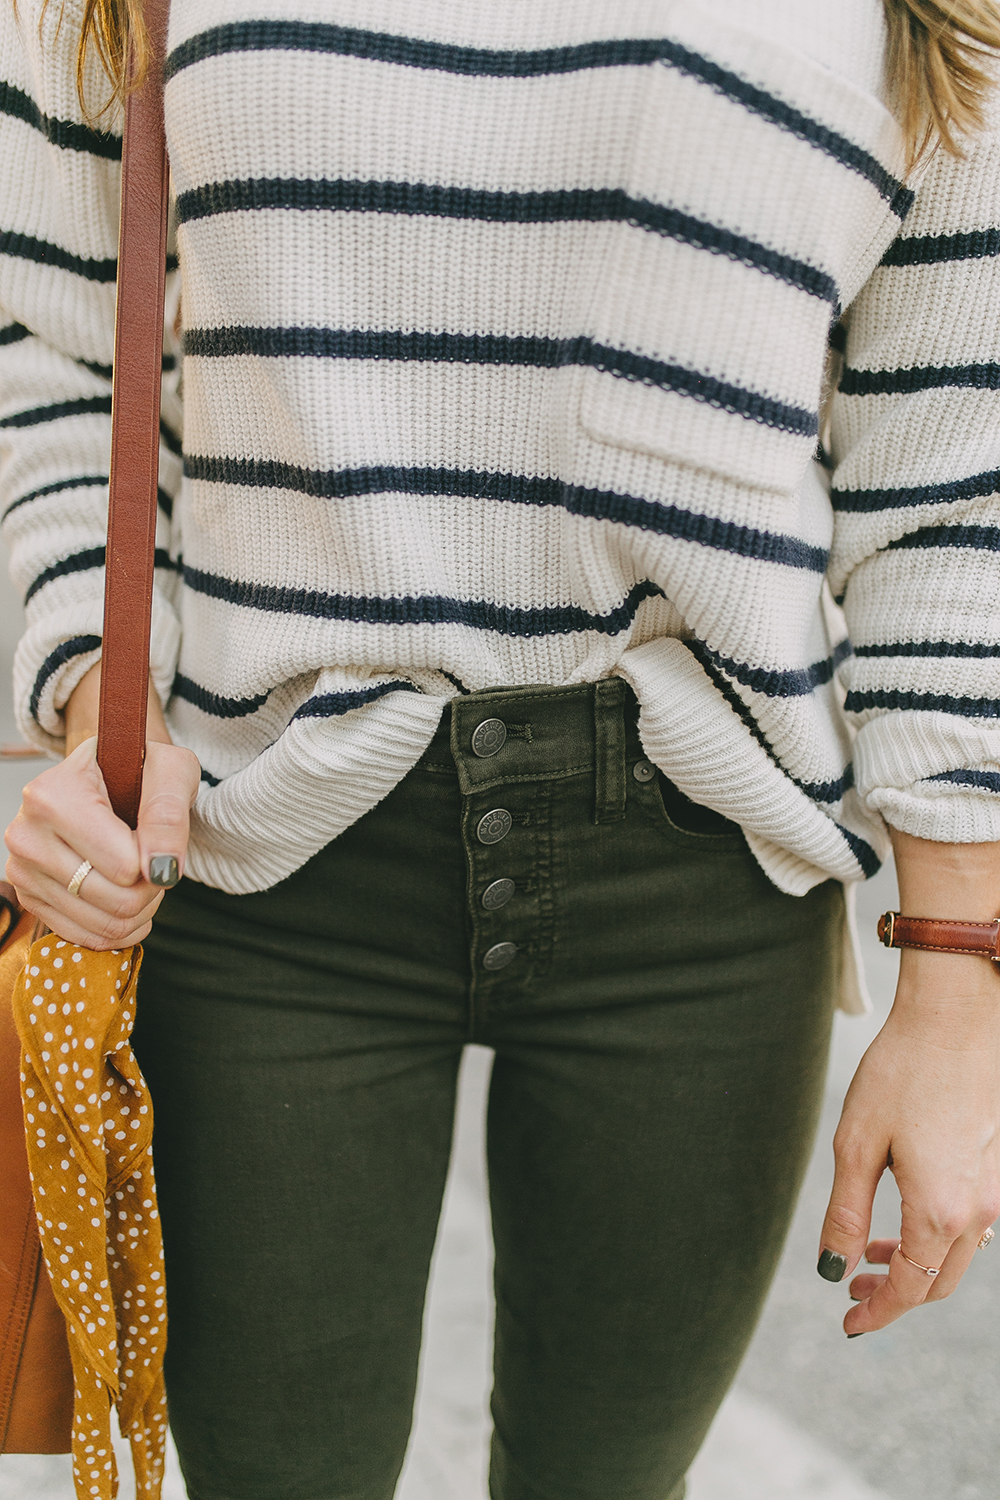 livvyland-blog-olivia-watson-austin-texas-fashion-lifestyle-blogger-madewell-olive-skinny-jeans-striped-sweater-trunk-club-review-4